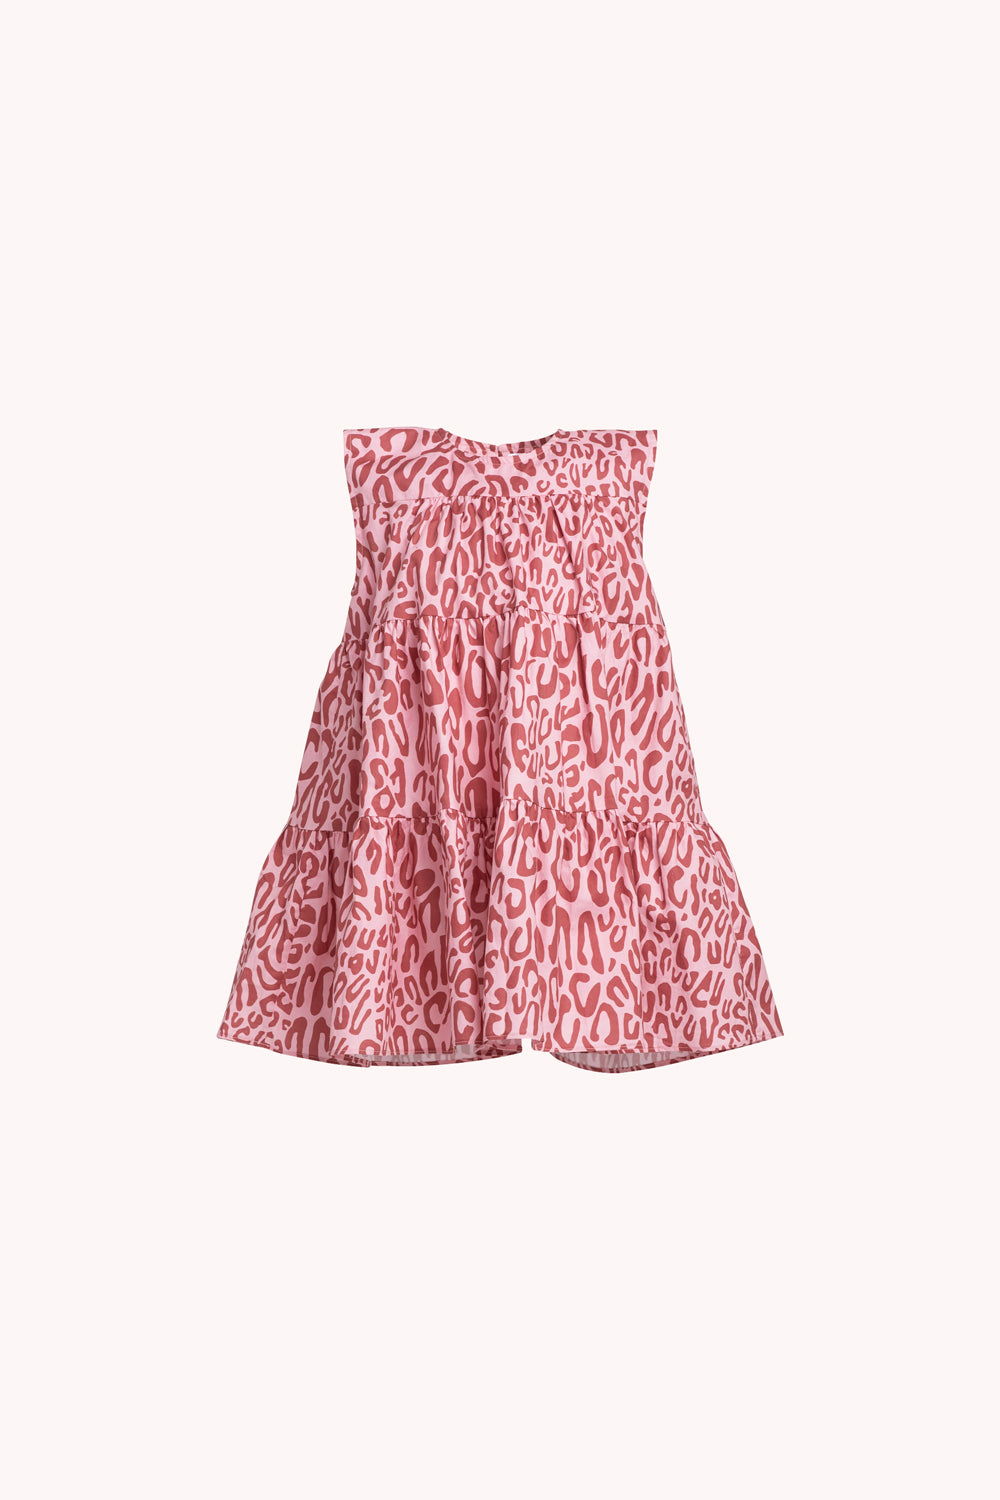 Lizzie Dress | Soft Pink Leopard